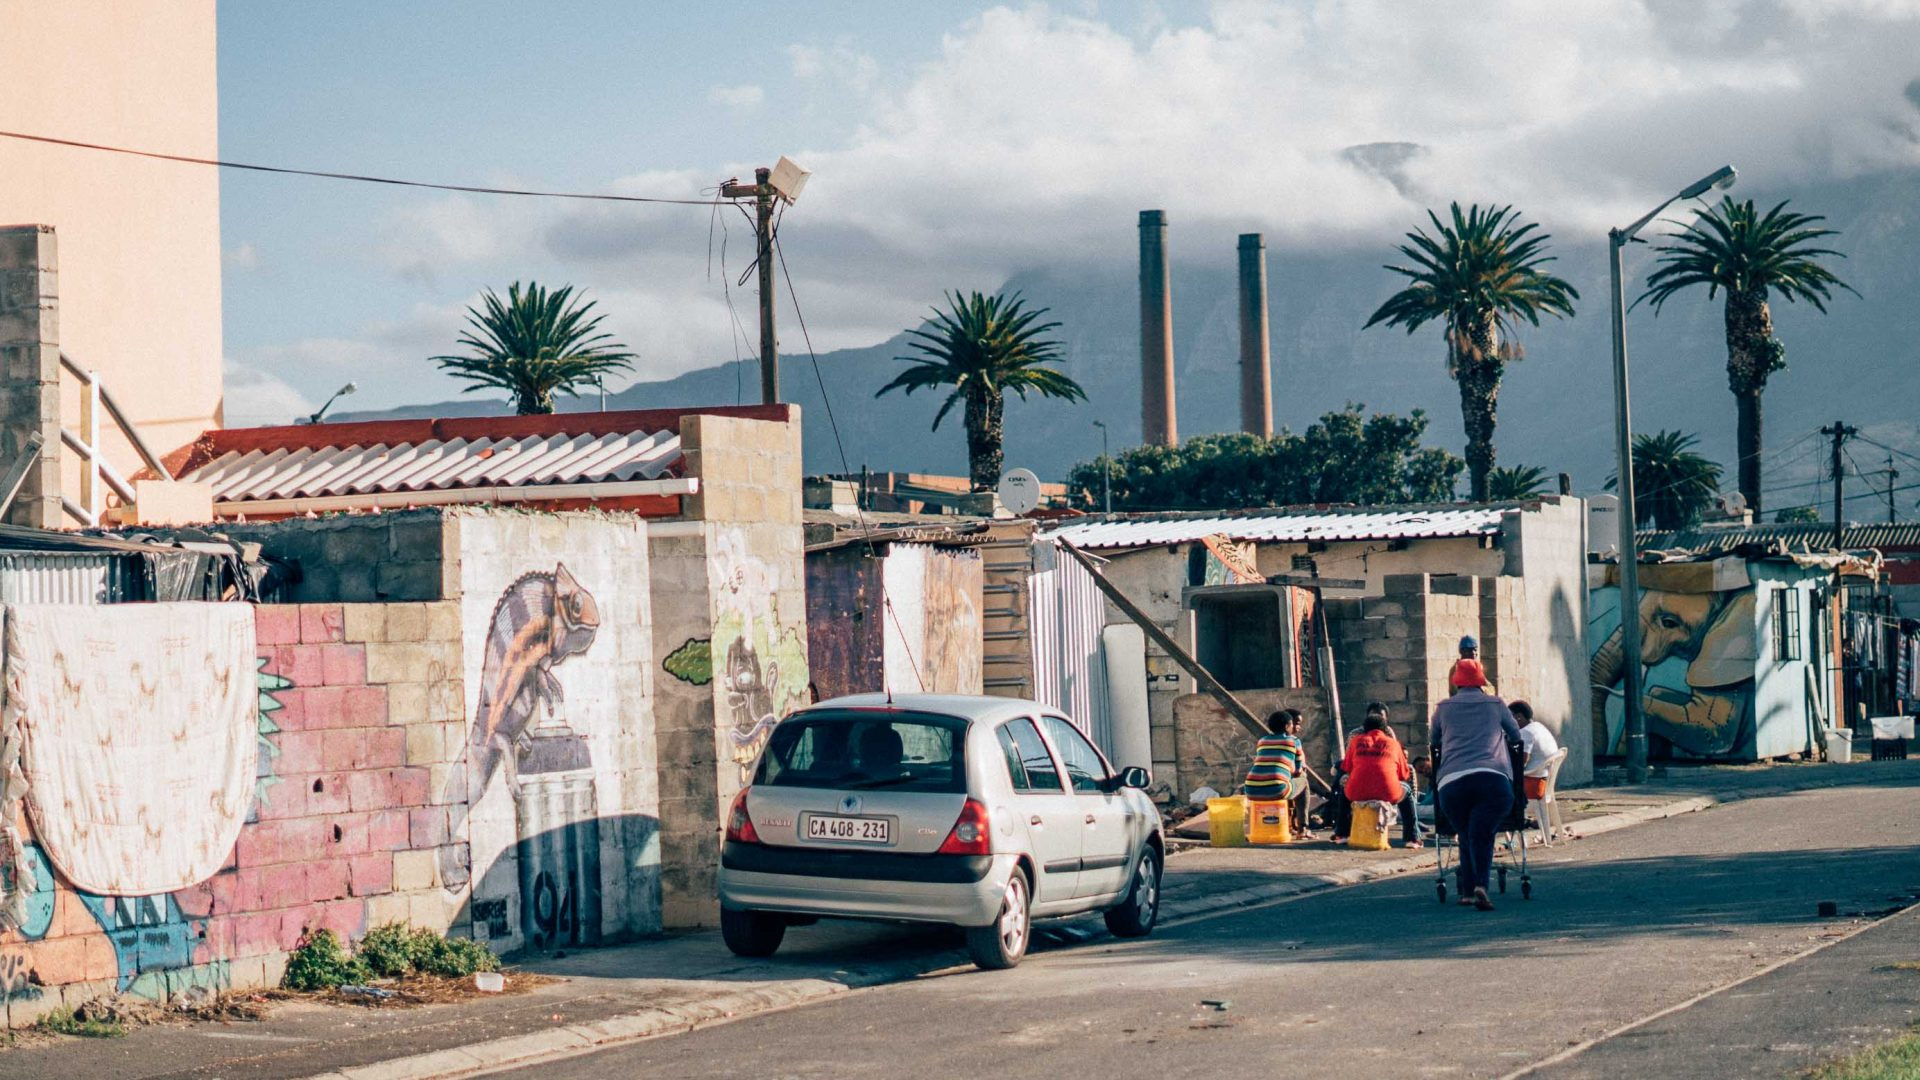 A typical street scene in Langa, Cape Town.